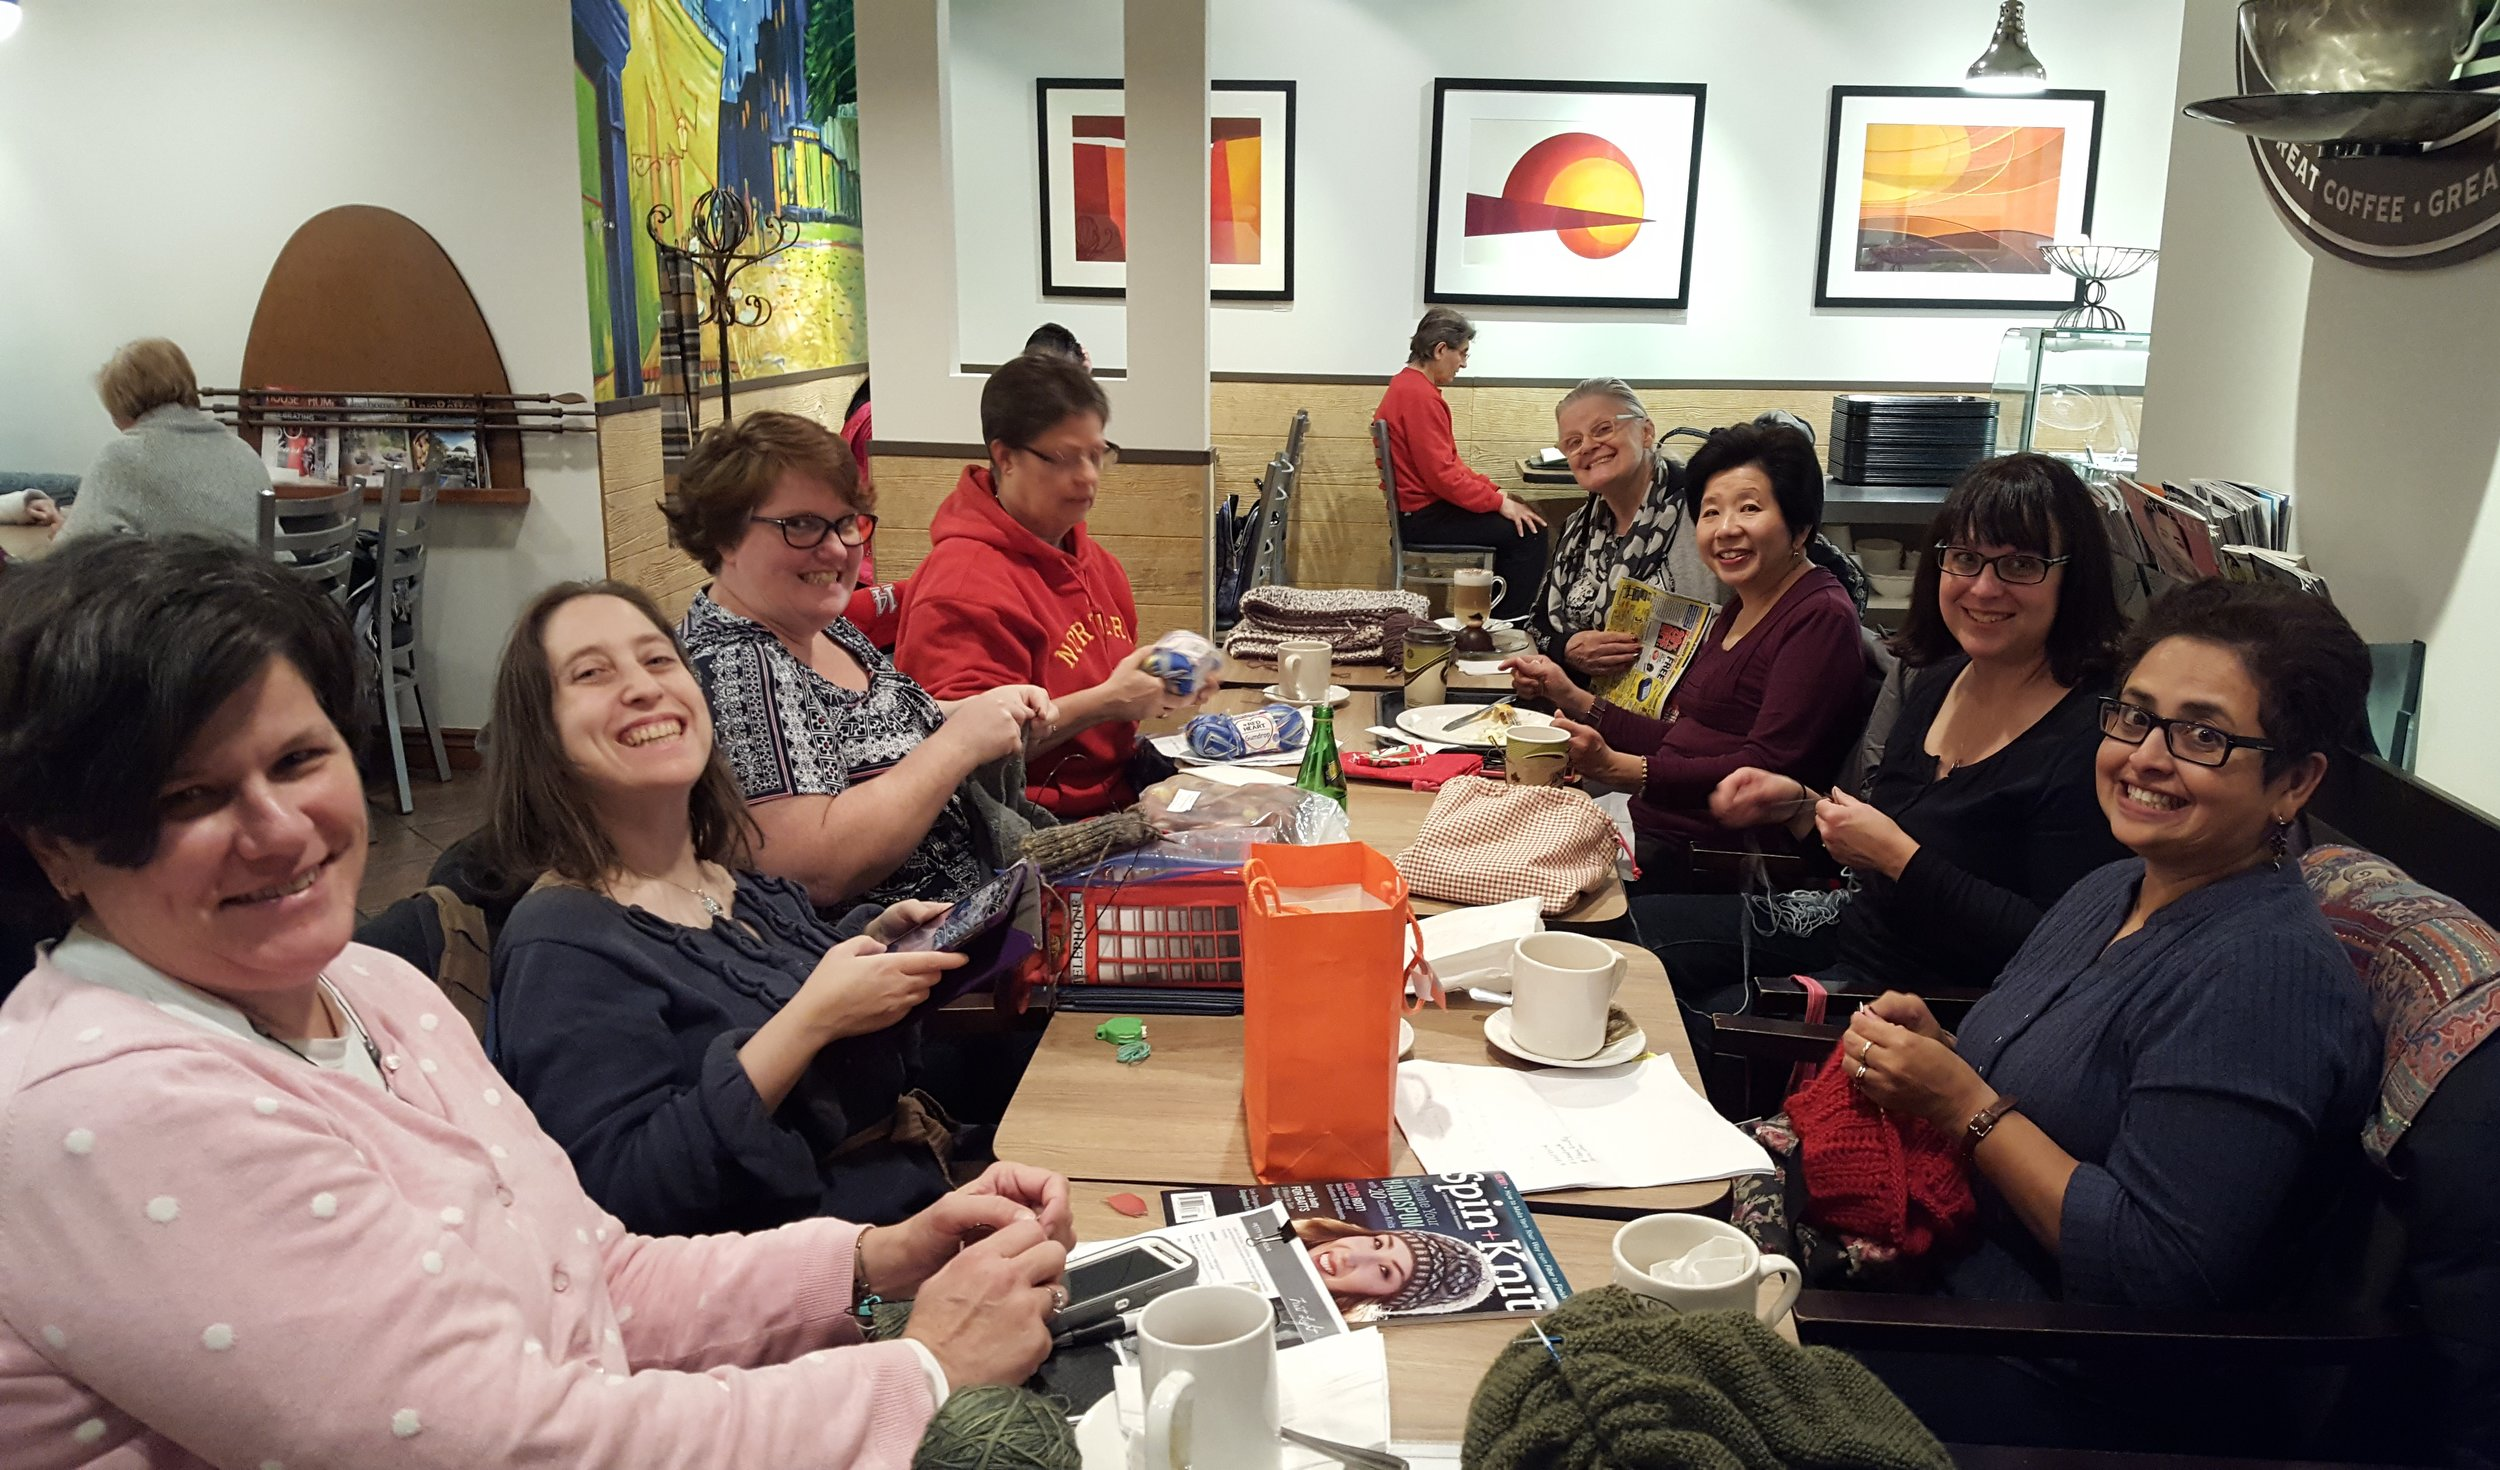 One of my favourite things...knit night with friends:)